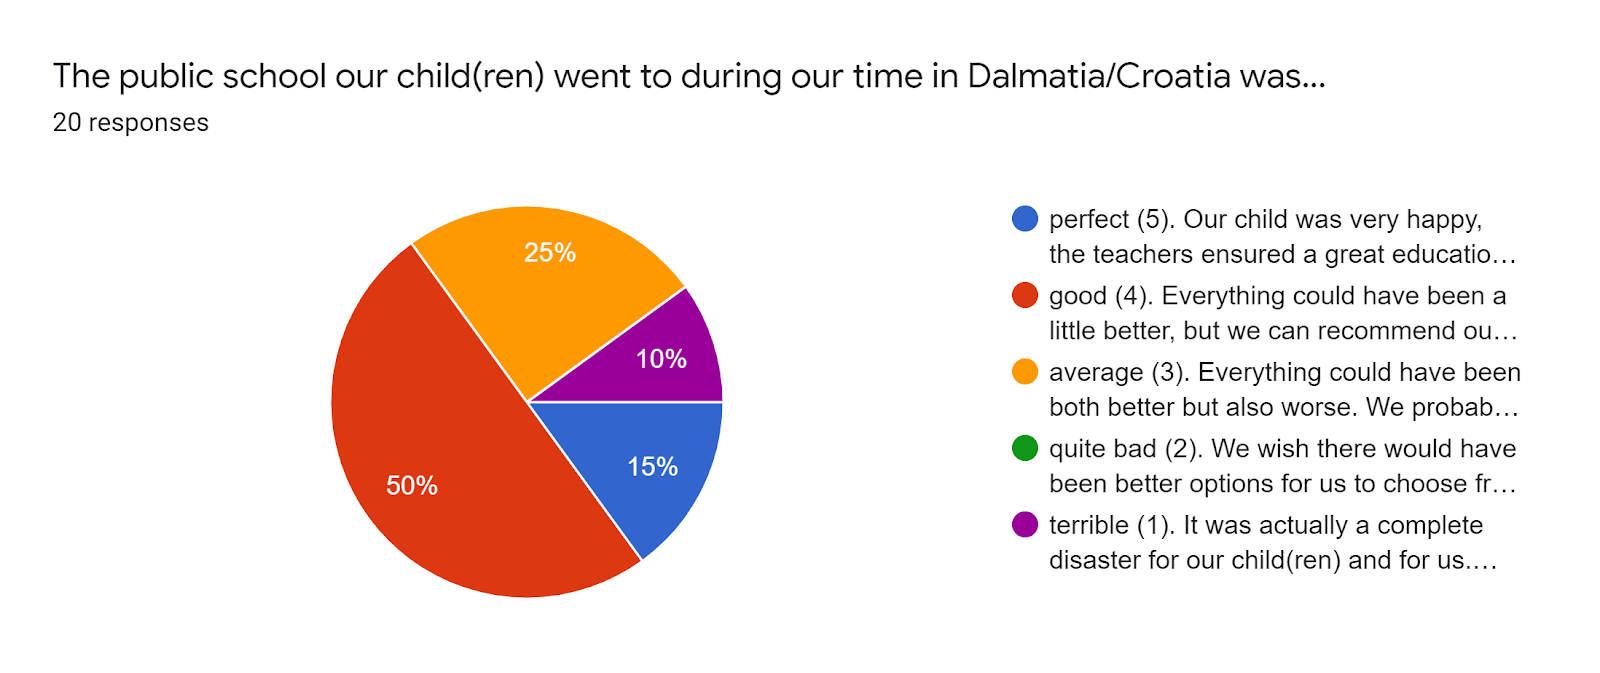 Forms response chart. Question title: The public school our child(ren) went to during our time in Dalmatia/Croatia was.... Number of responses: 20 responses.